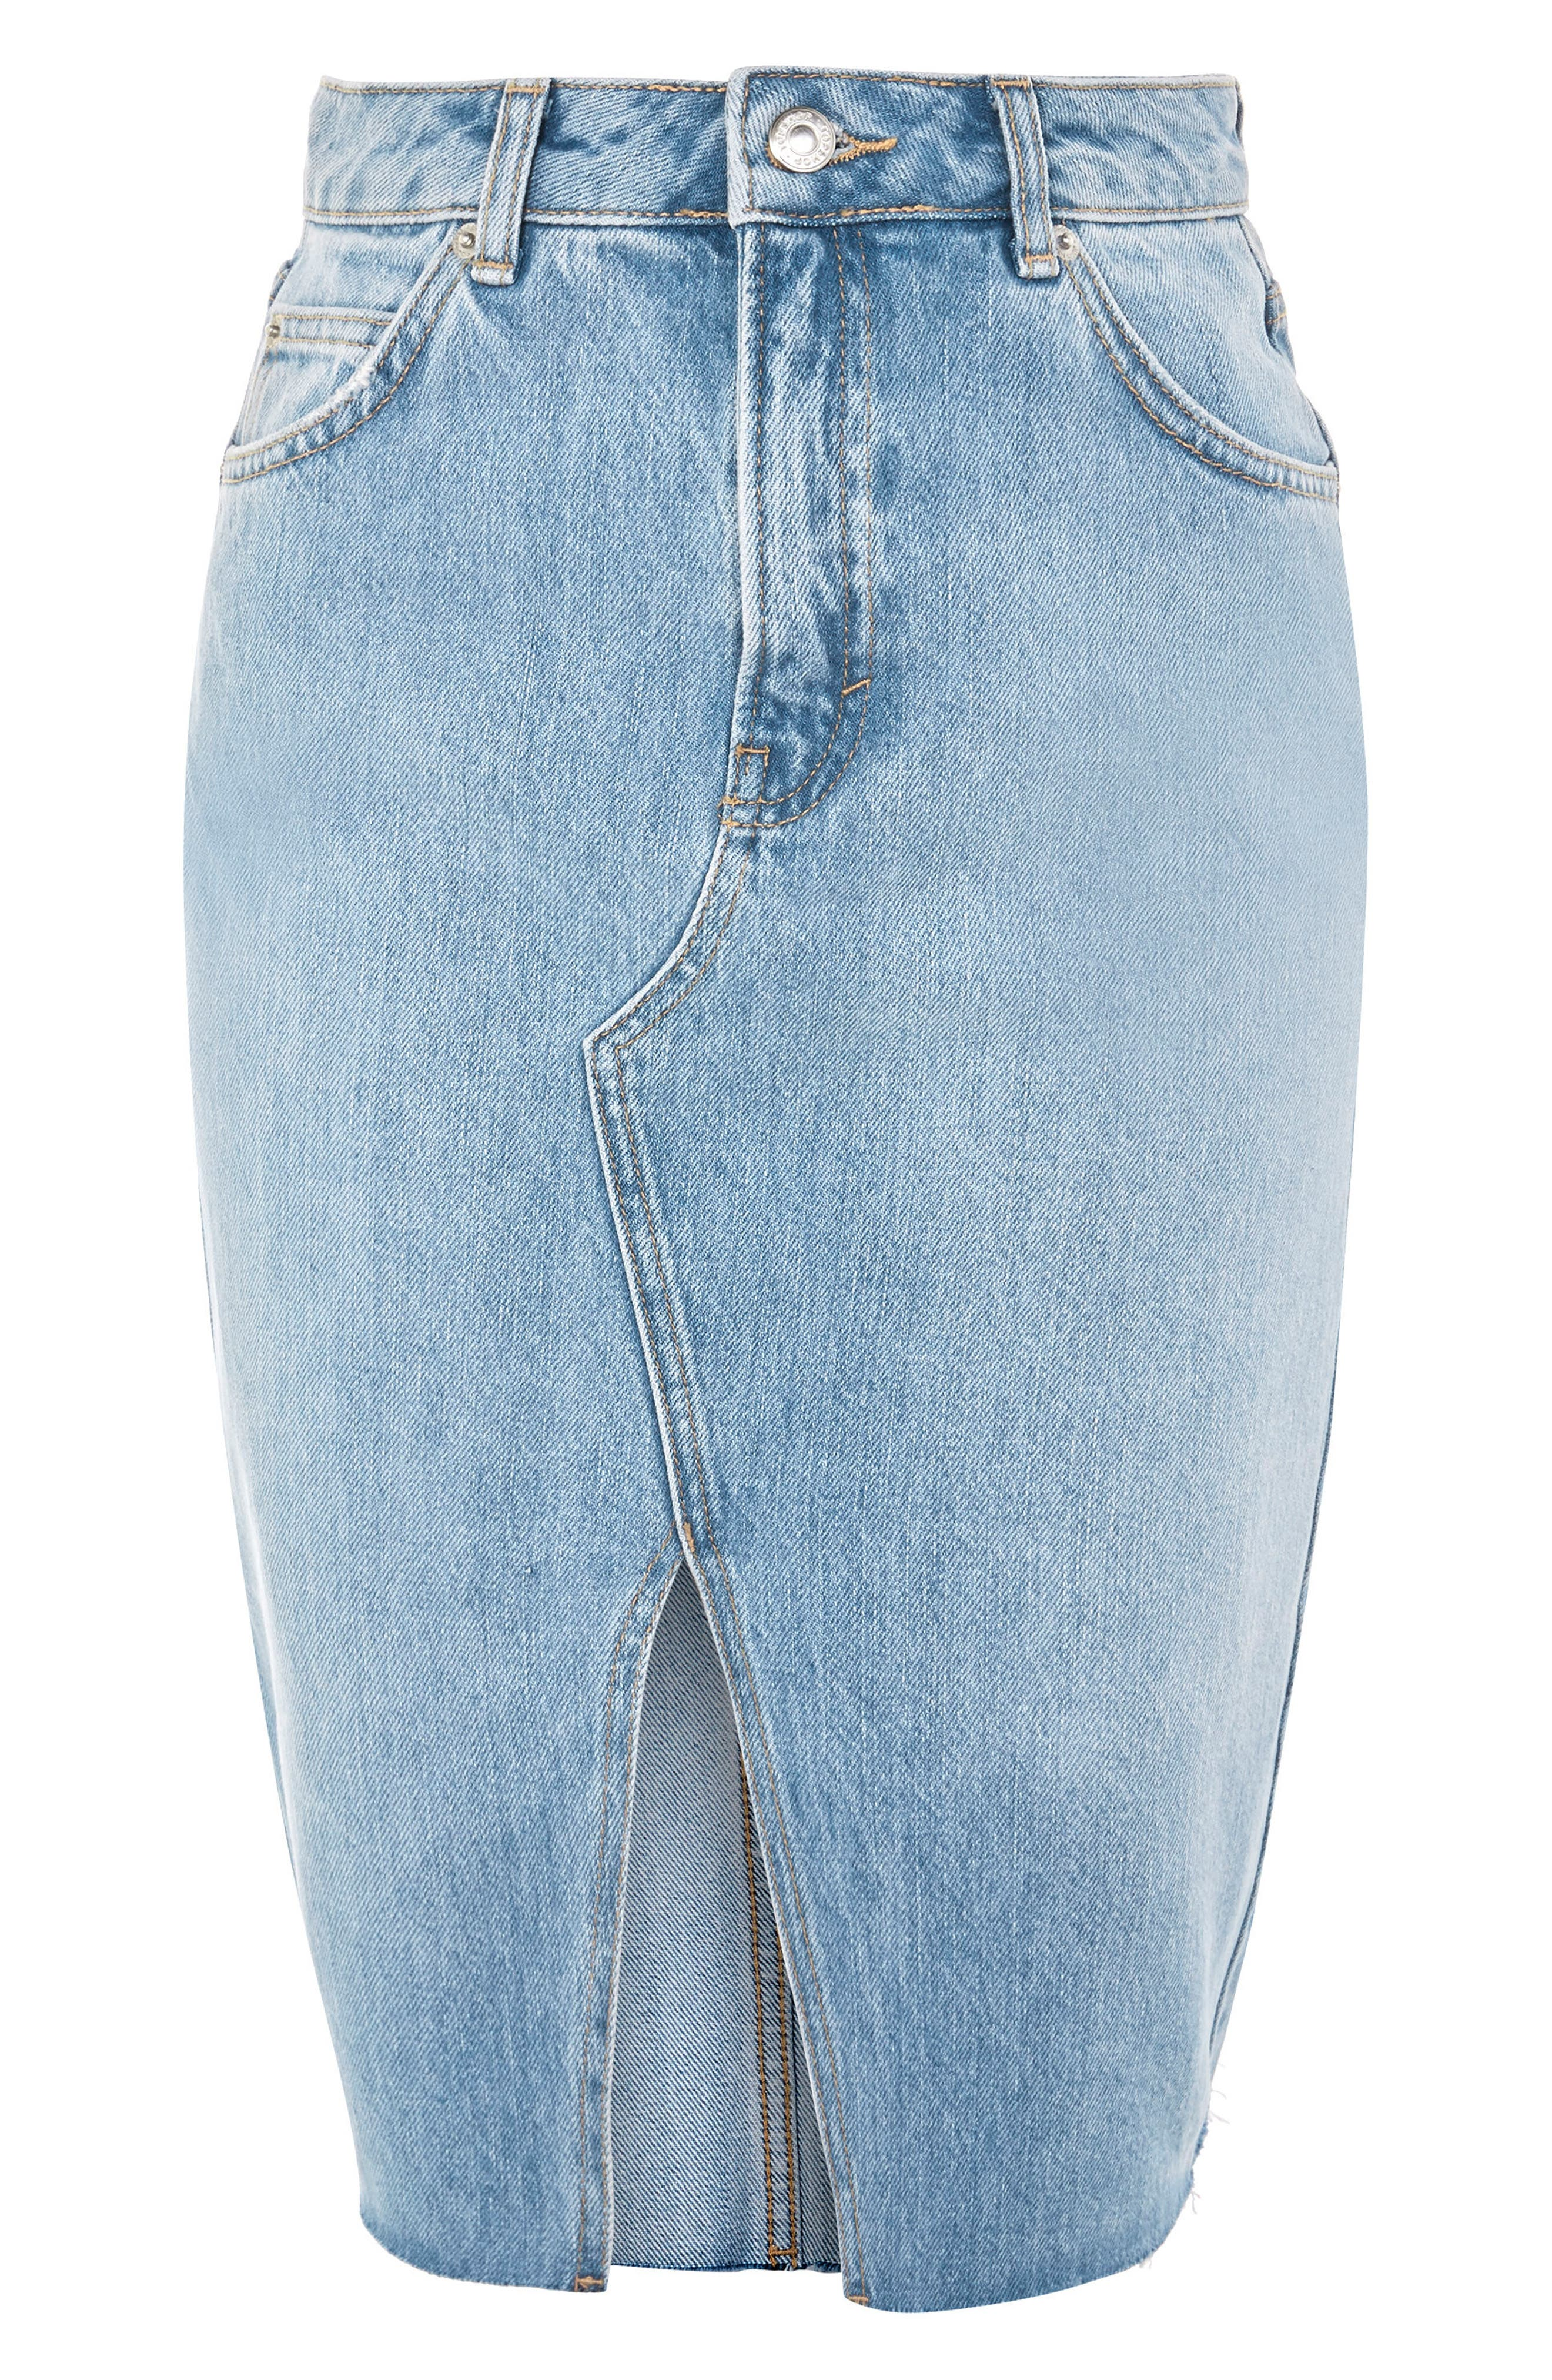 Alternate Image 1 Selected - Topshop Denim Midi Skirt